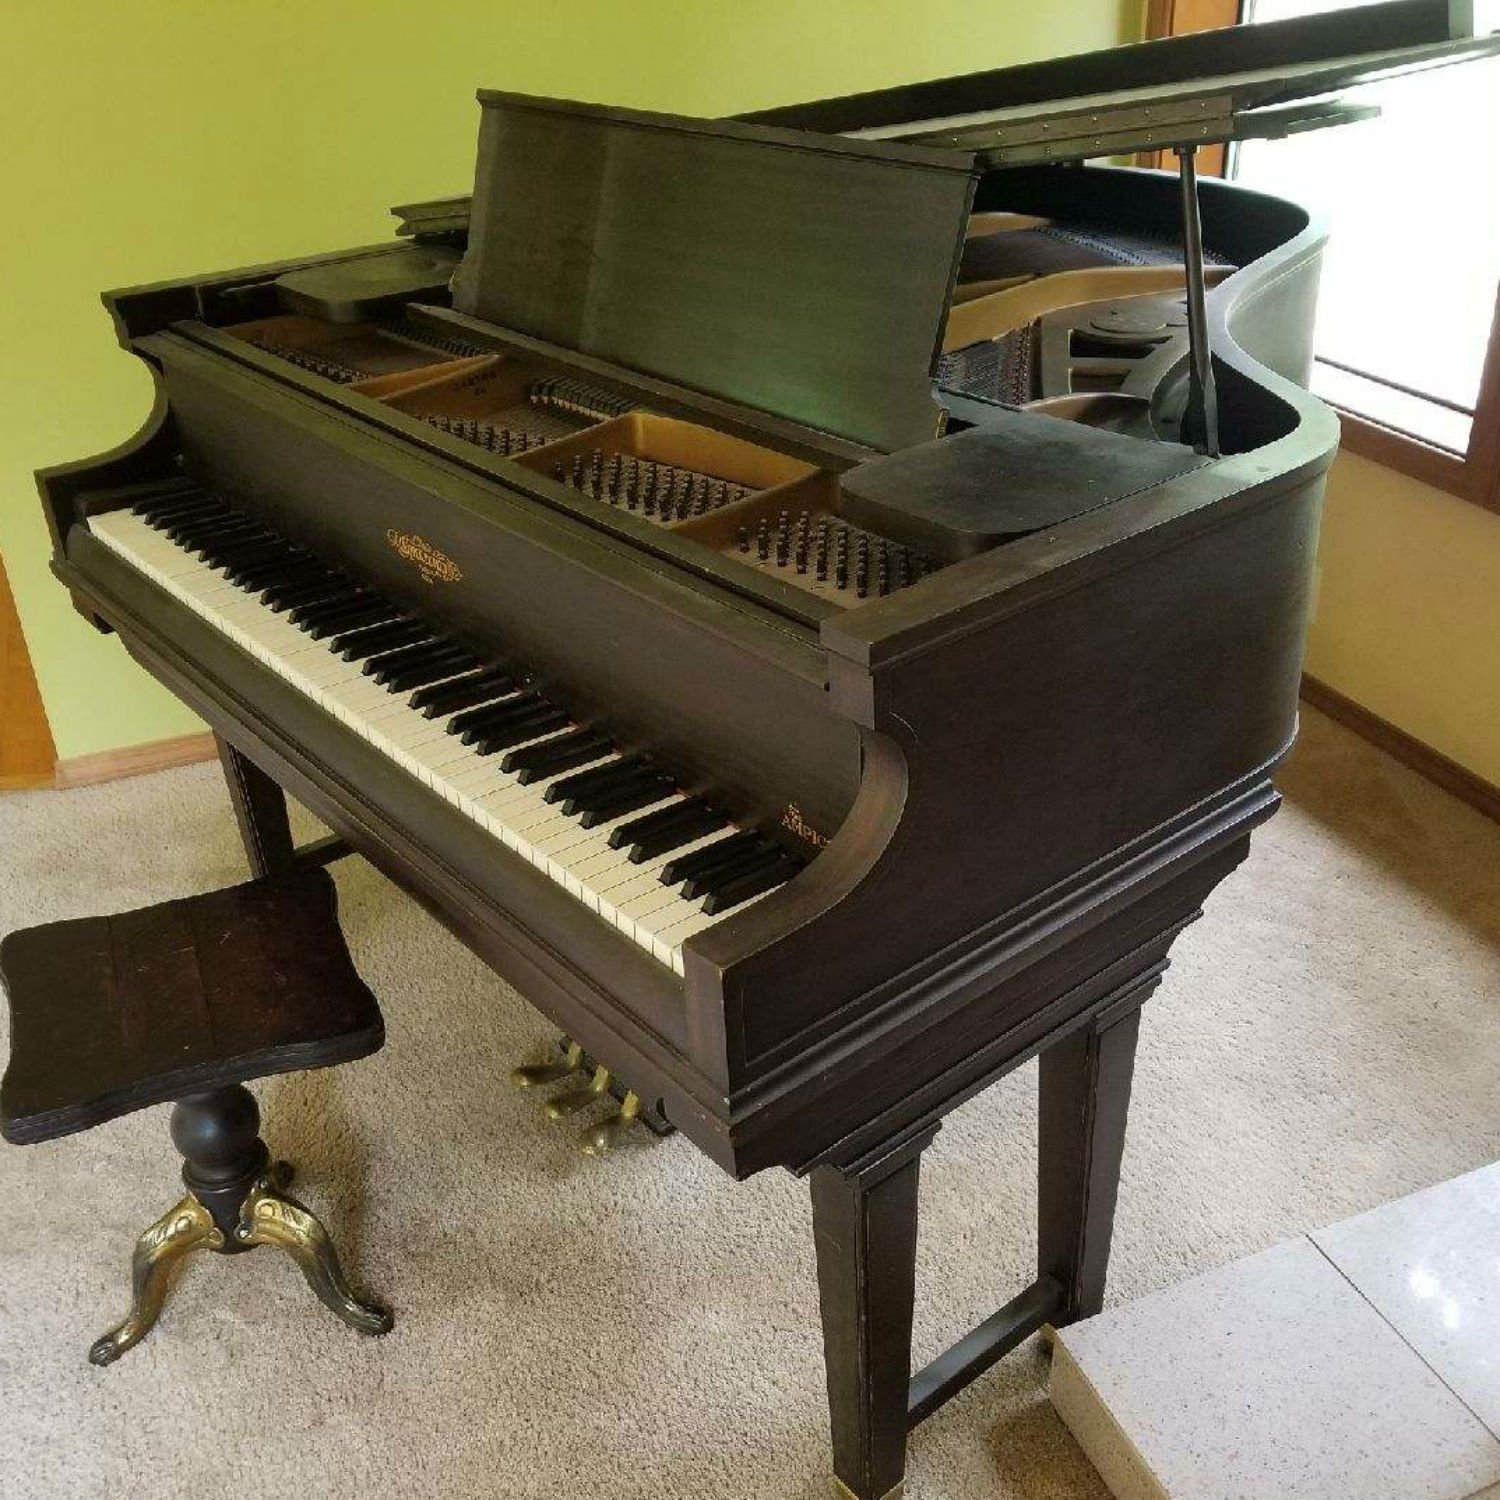 1927 Chickering Player Grand Piano